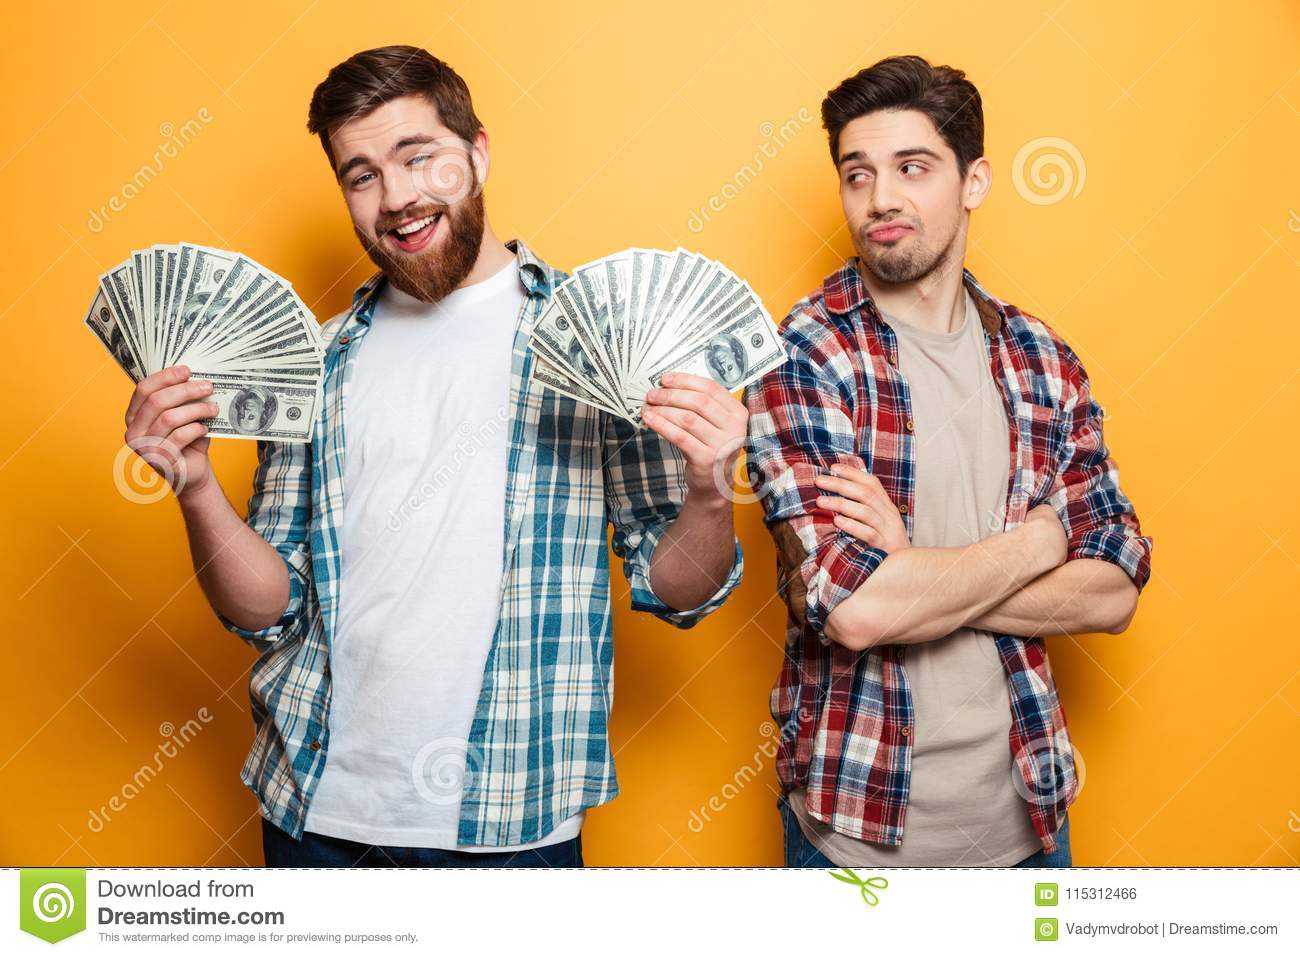 Happy bearded man holding money and looking at the camera